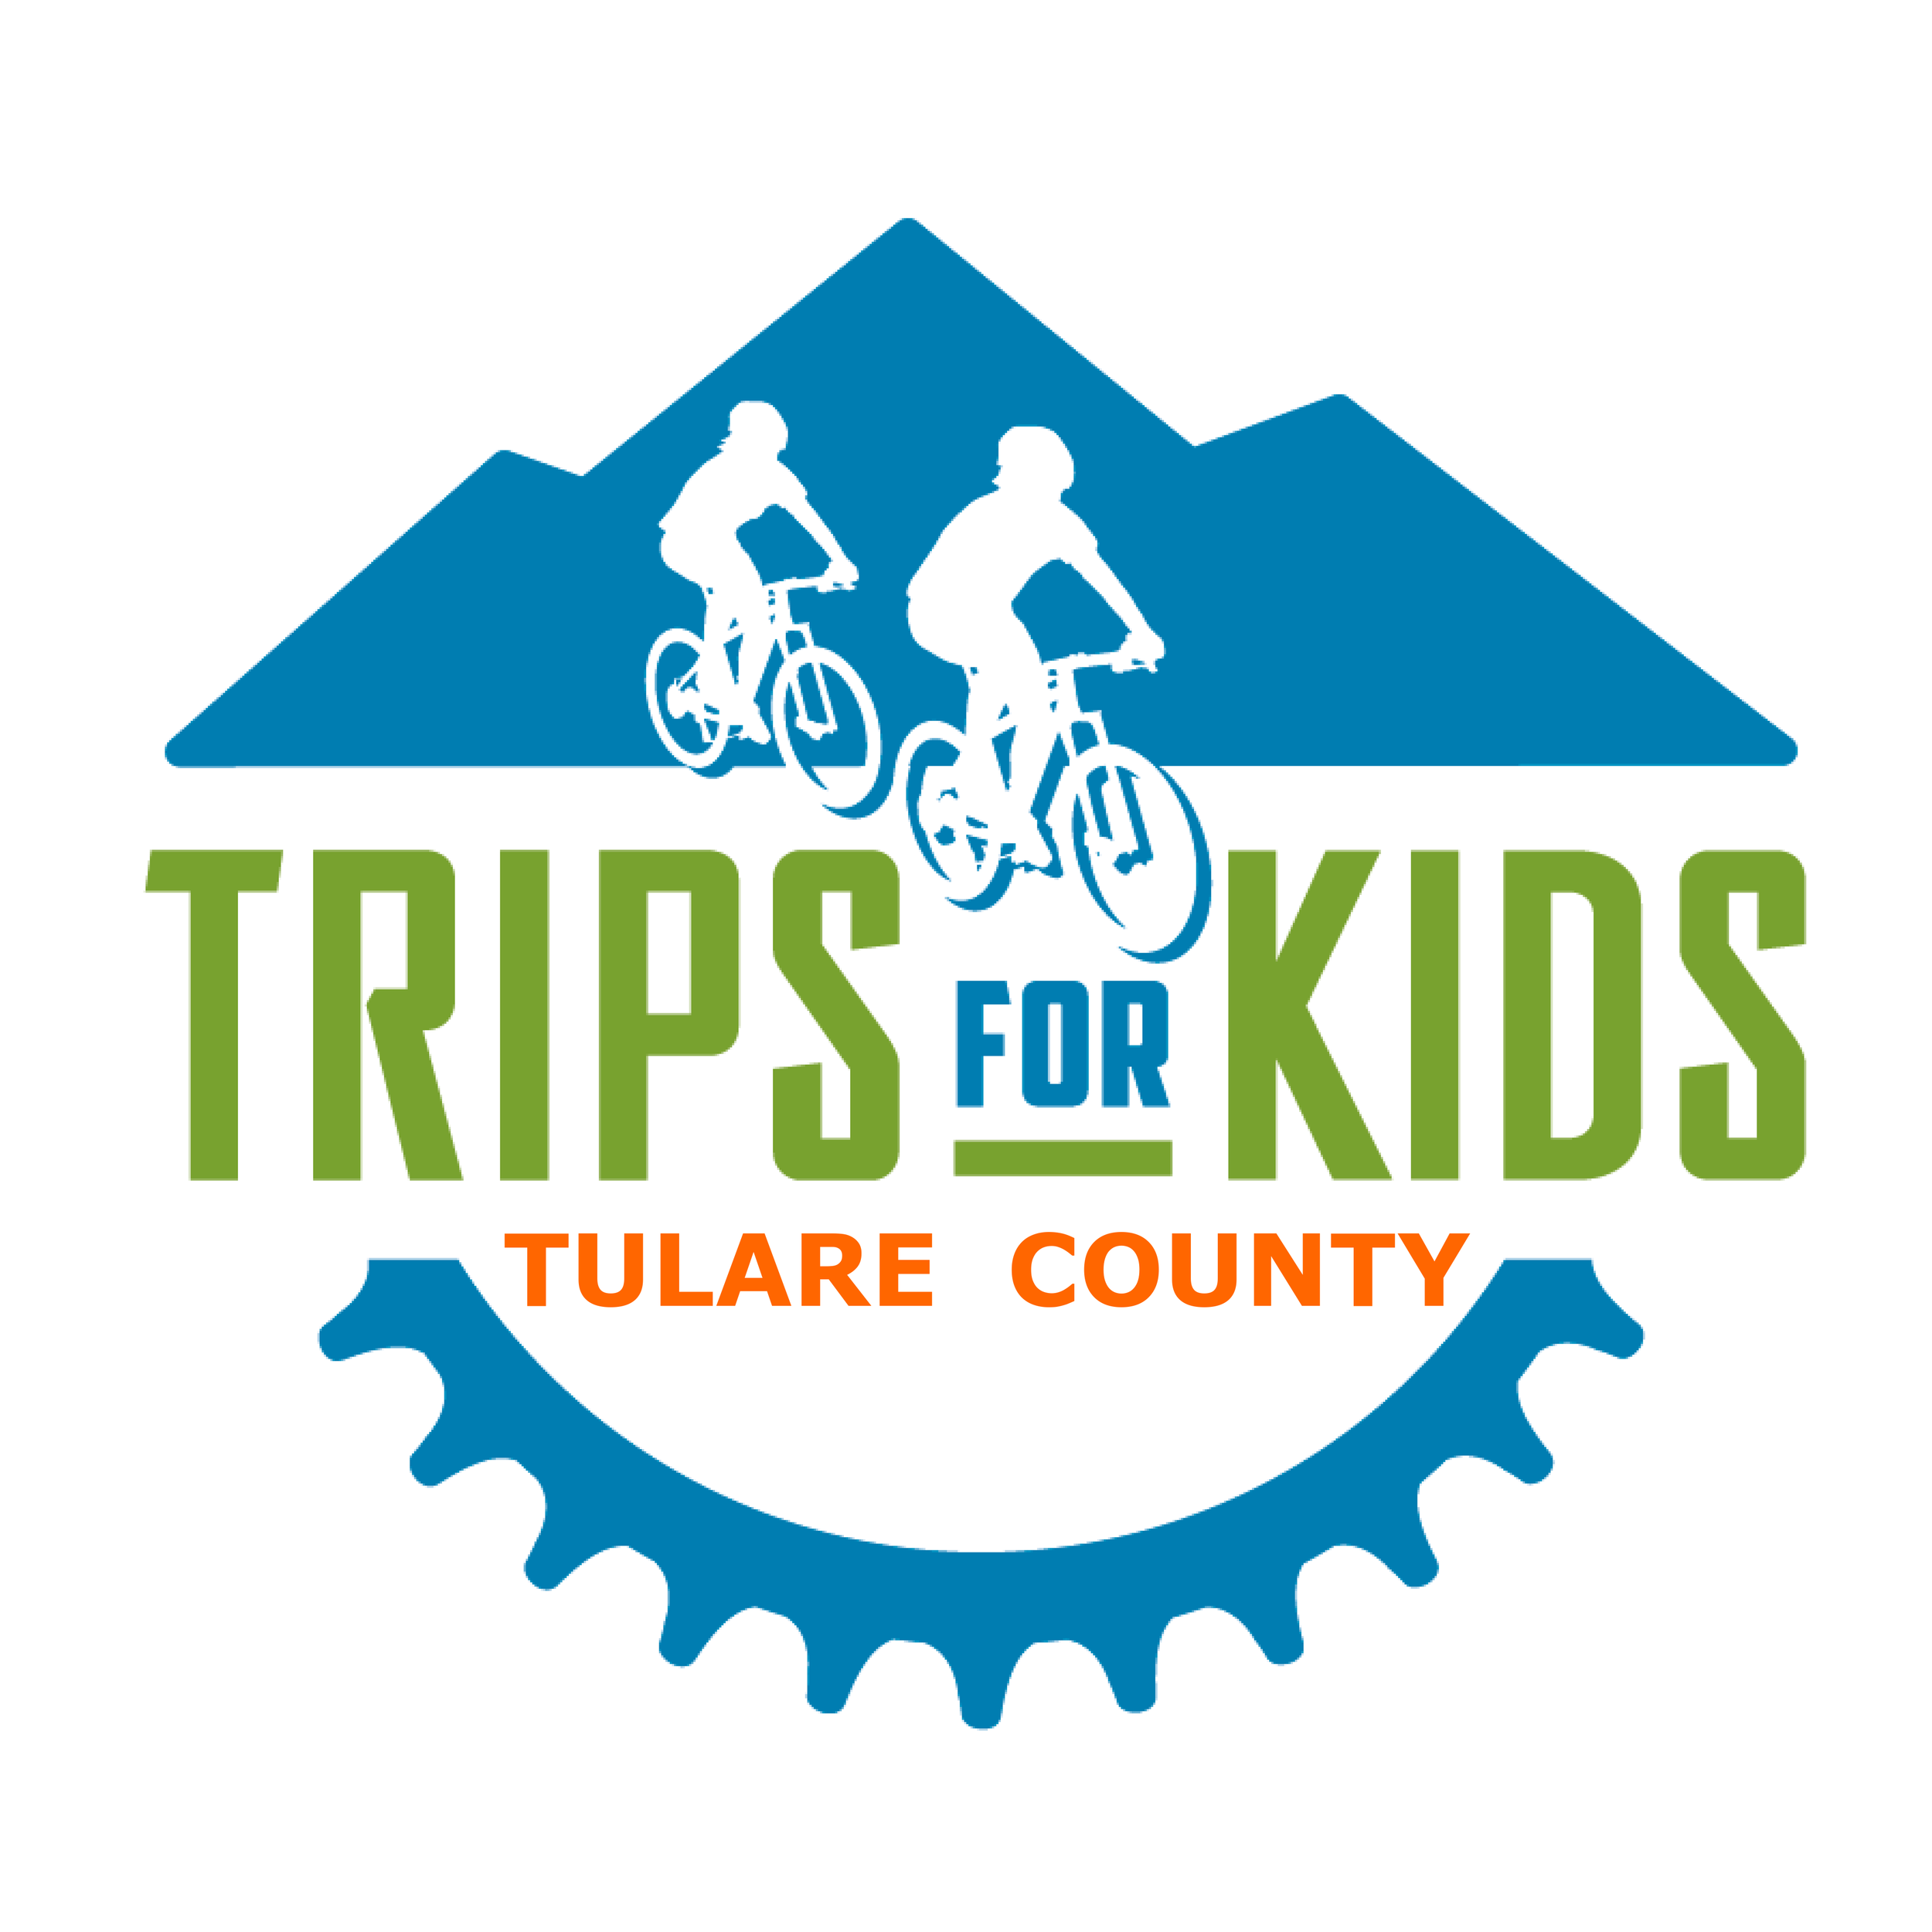 - Trips for Kids Tulare County is fiscally-sponsored by Church of God of Exeter, and is an affiliate chapter of Trips for Kids, a national 501c3 nonprofit youth development and education umbrella organization. Trips for Kids' mission is to give every kid in every community the opportunity to know the joy of riding a bike and the freedom to explore the natural world on two wheels.Since 1988 Trips for Kids has grown into a vast network of chapters located throughout North America. Trips for Kids has enriched the lives of more than 230,000 youth through Discovery Rides, Adventure Clubs, Mobile Bike Clinics, Earn-a-Bike Workshops and Youth@Work programs that help youth to be more active, experience natural places, gain environmental and STEM-based knowledge, build confidence and develop job readiness skills.To learn more about Trips for Kids, please click the national logo on the top left of this page.